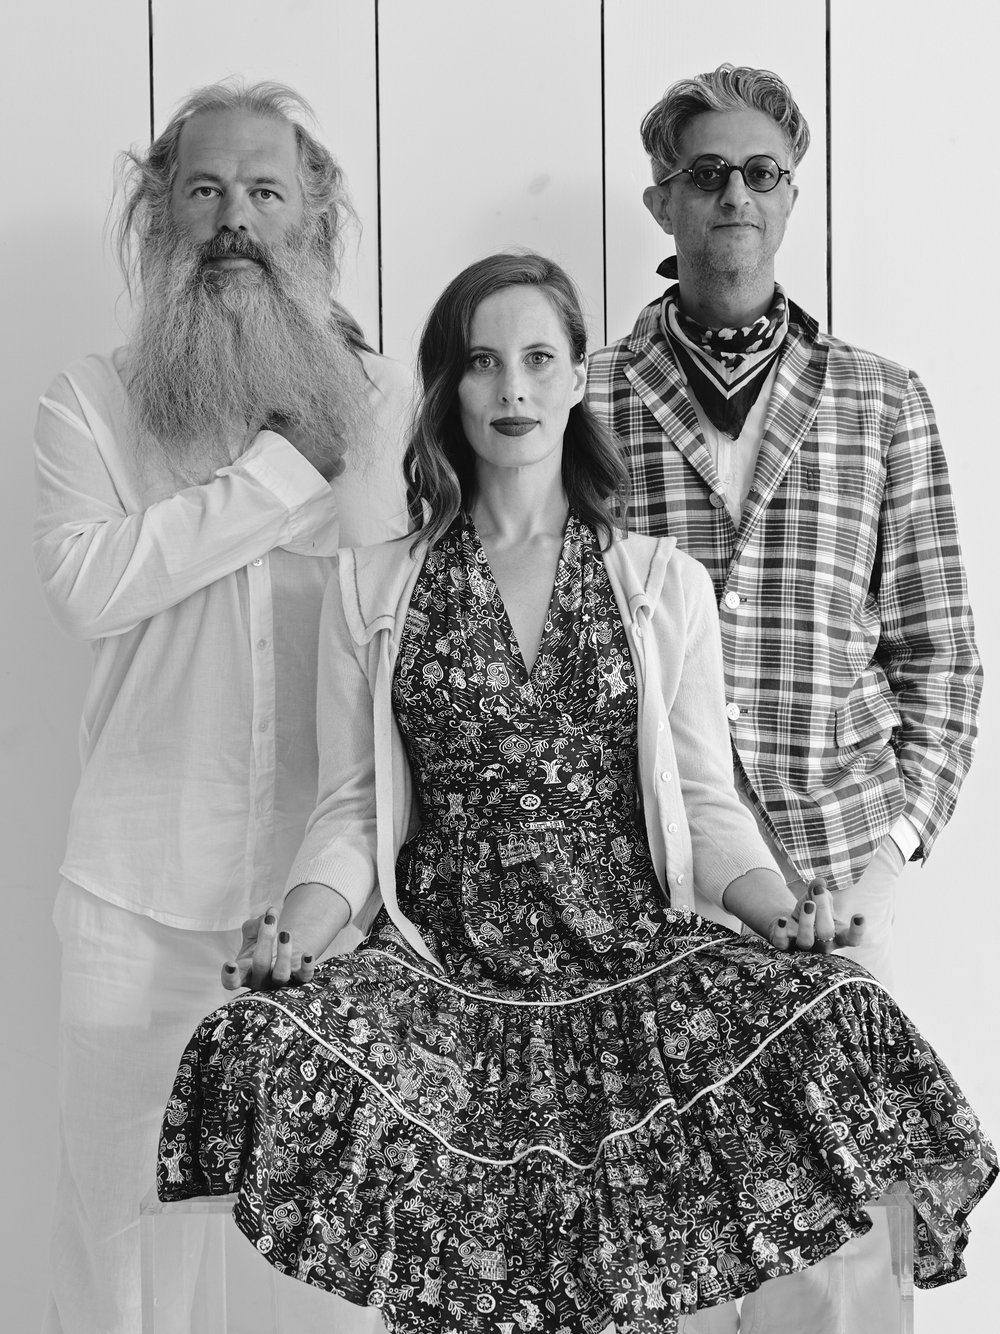 Rick Rubin (left) pictured with author Liz Goldwyn and photographer Max Vadukul